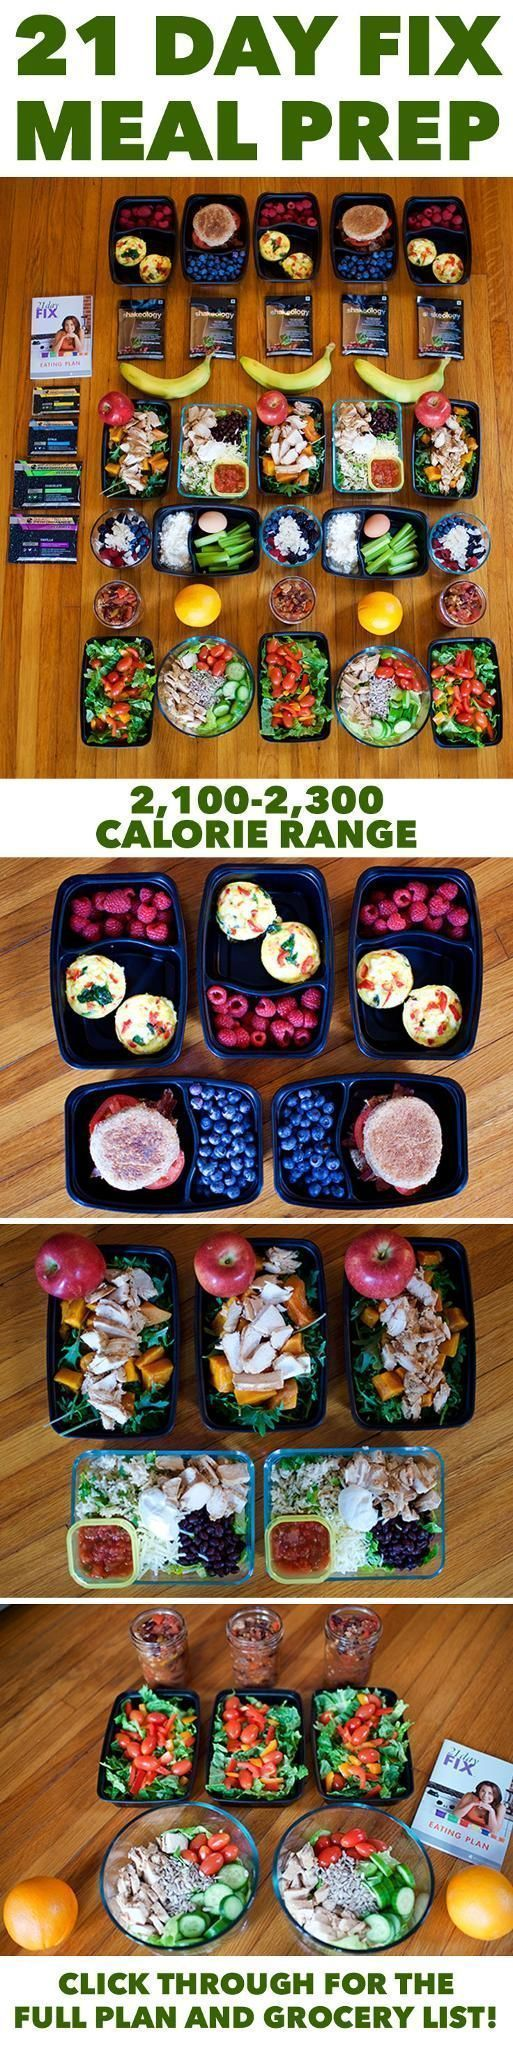 21 Day Fix Meal Prep for the 2,100–2,300 Calorie Level